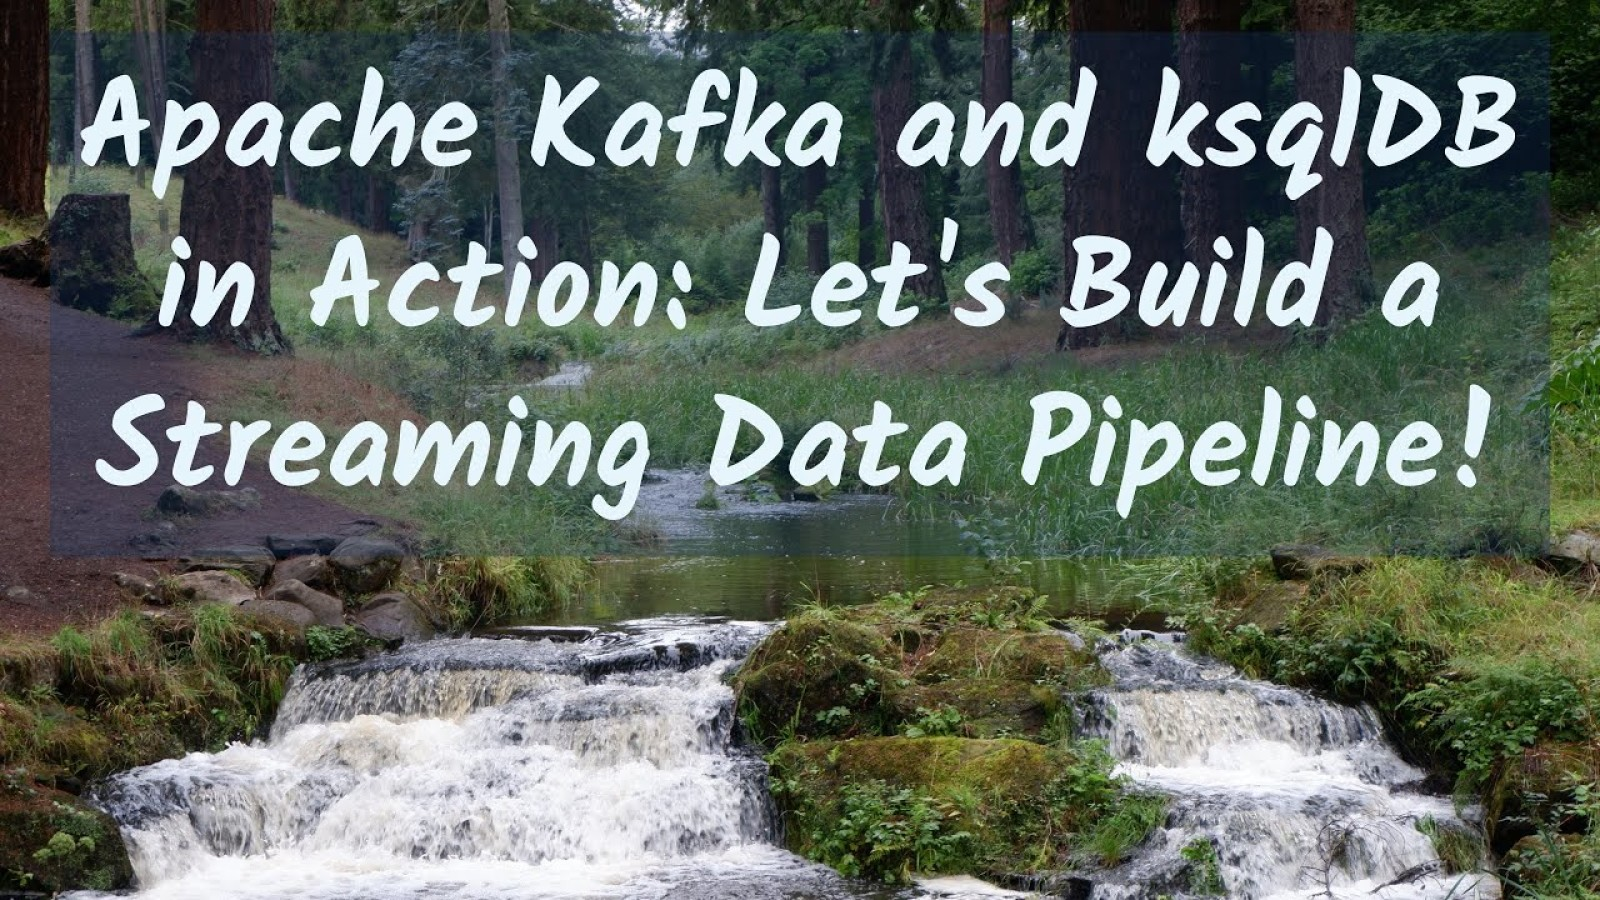 Apache Kafka and ksqlDB in Action: Let's Build a Streaming Data Pipeline!